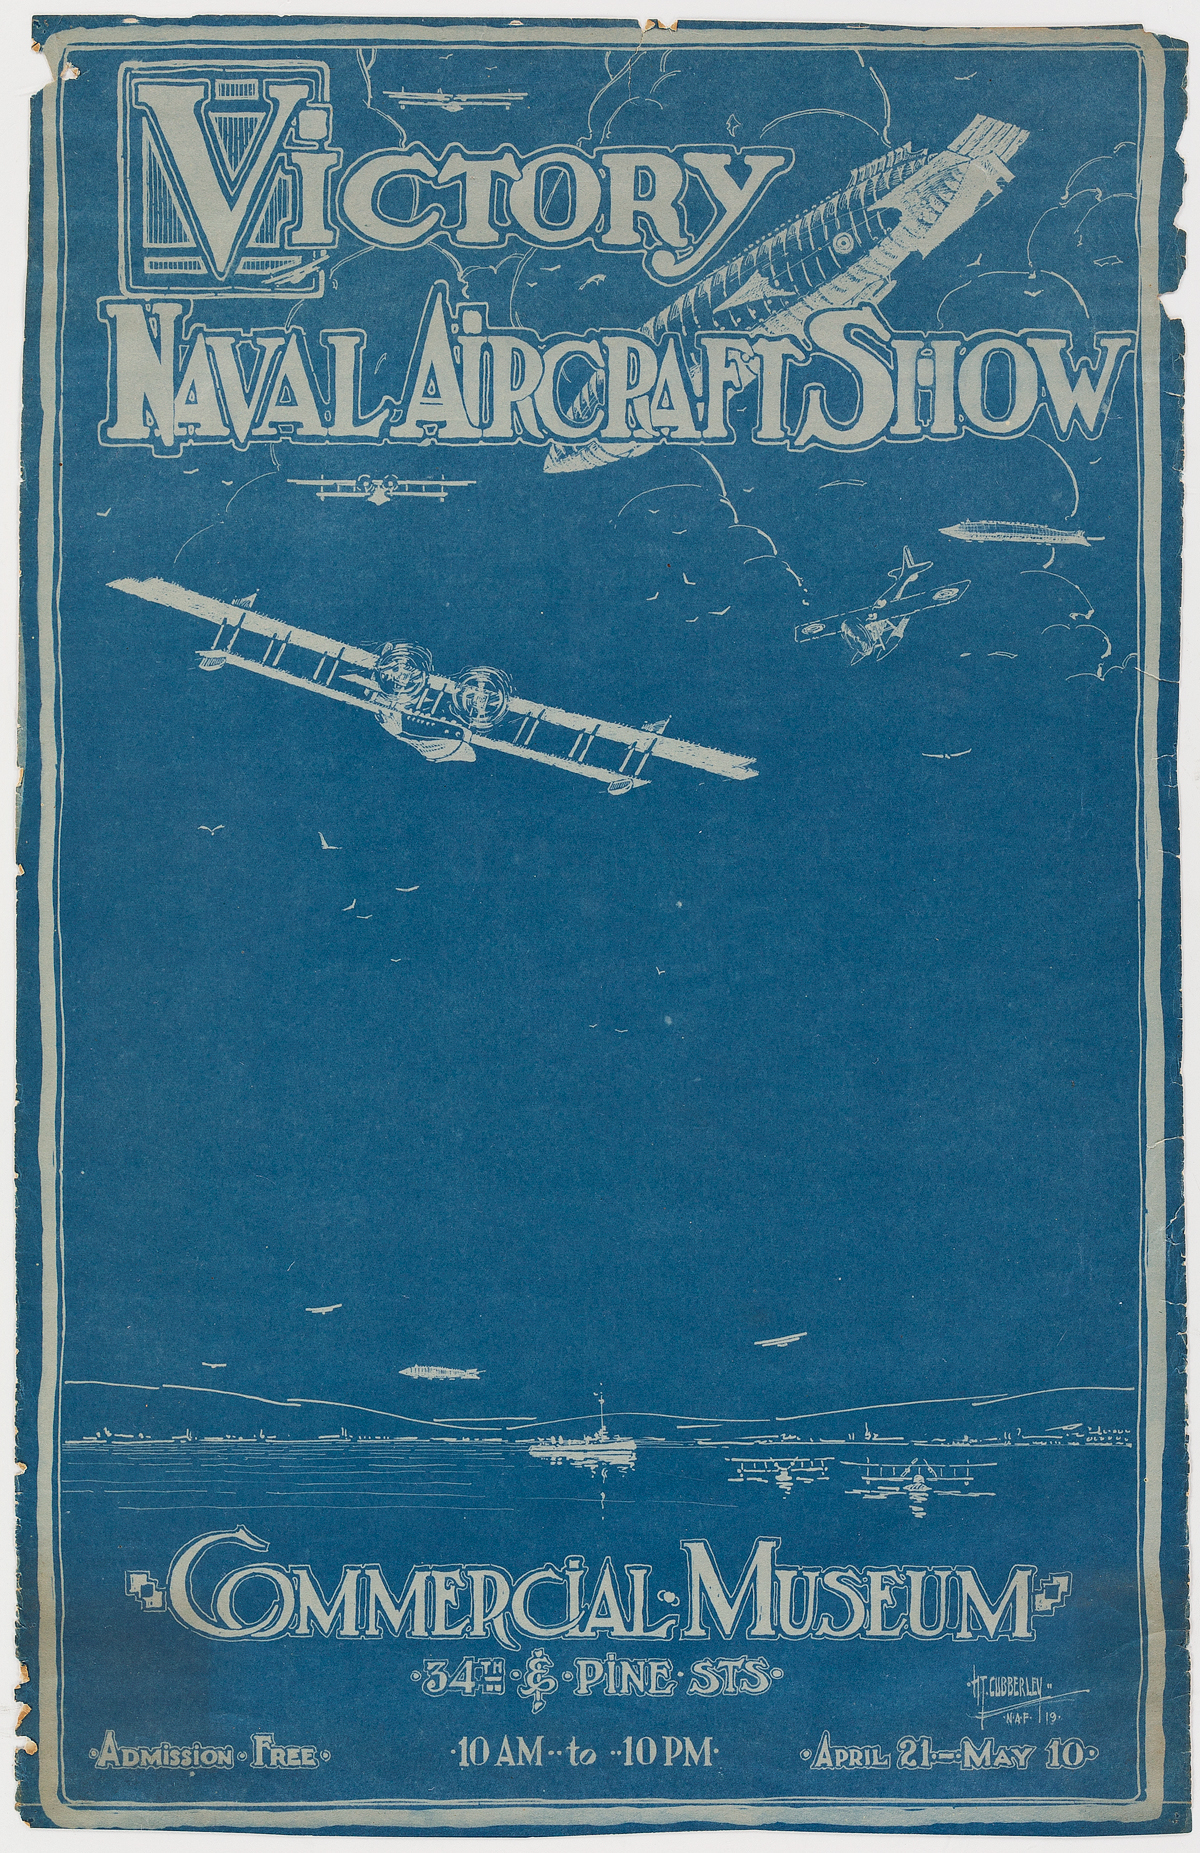 HT-CUBBERLEY-(DATES-UNKNOWN)-VICTORY-NAVAL-AVIATION-SHOW--COMMERCIAL-MUSEUM-1919-23x15-inches-59x38-cm